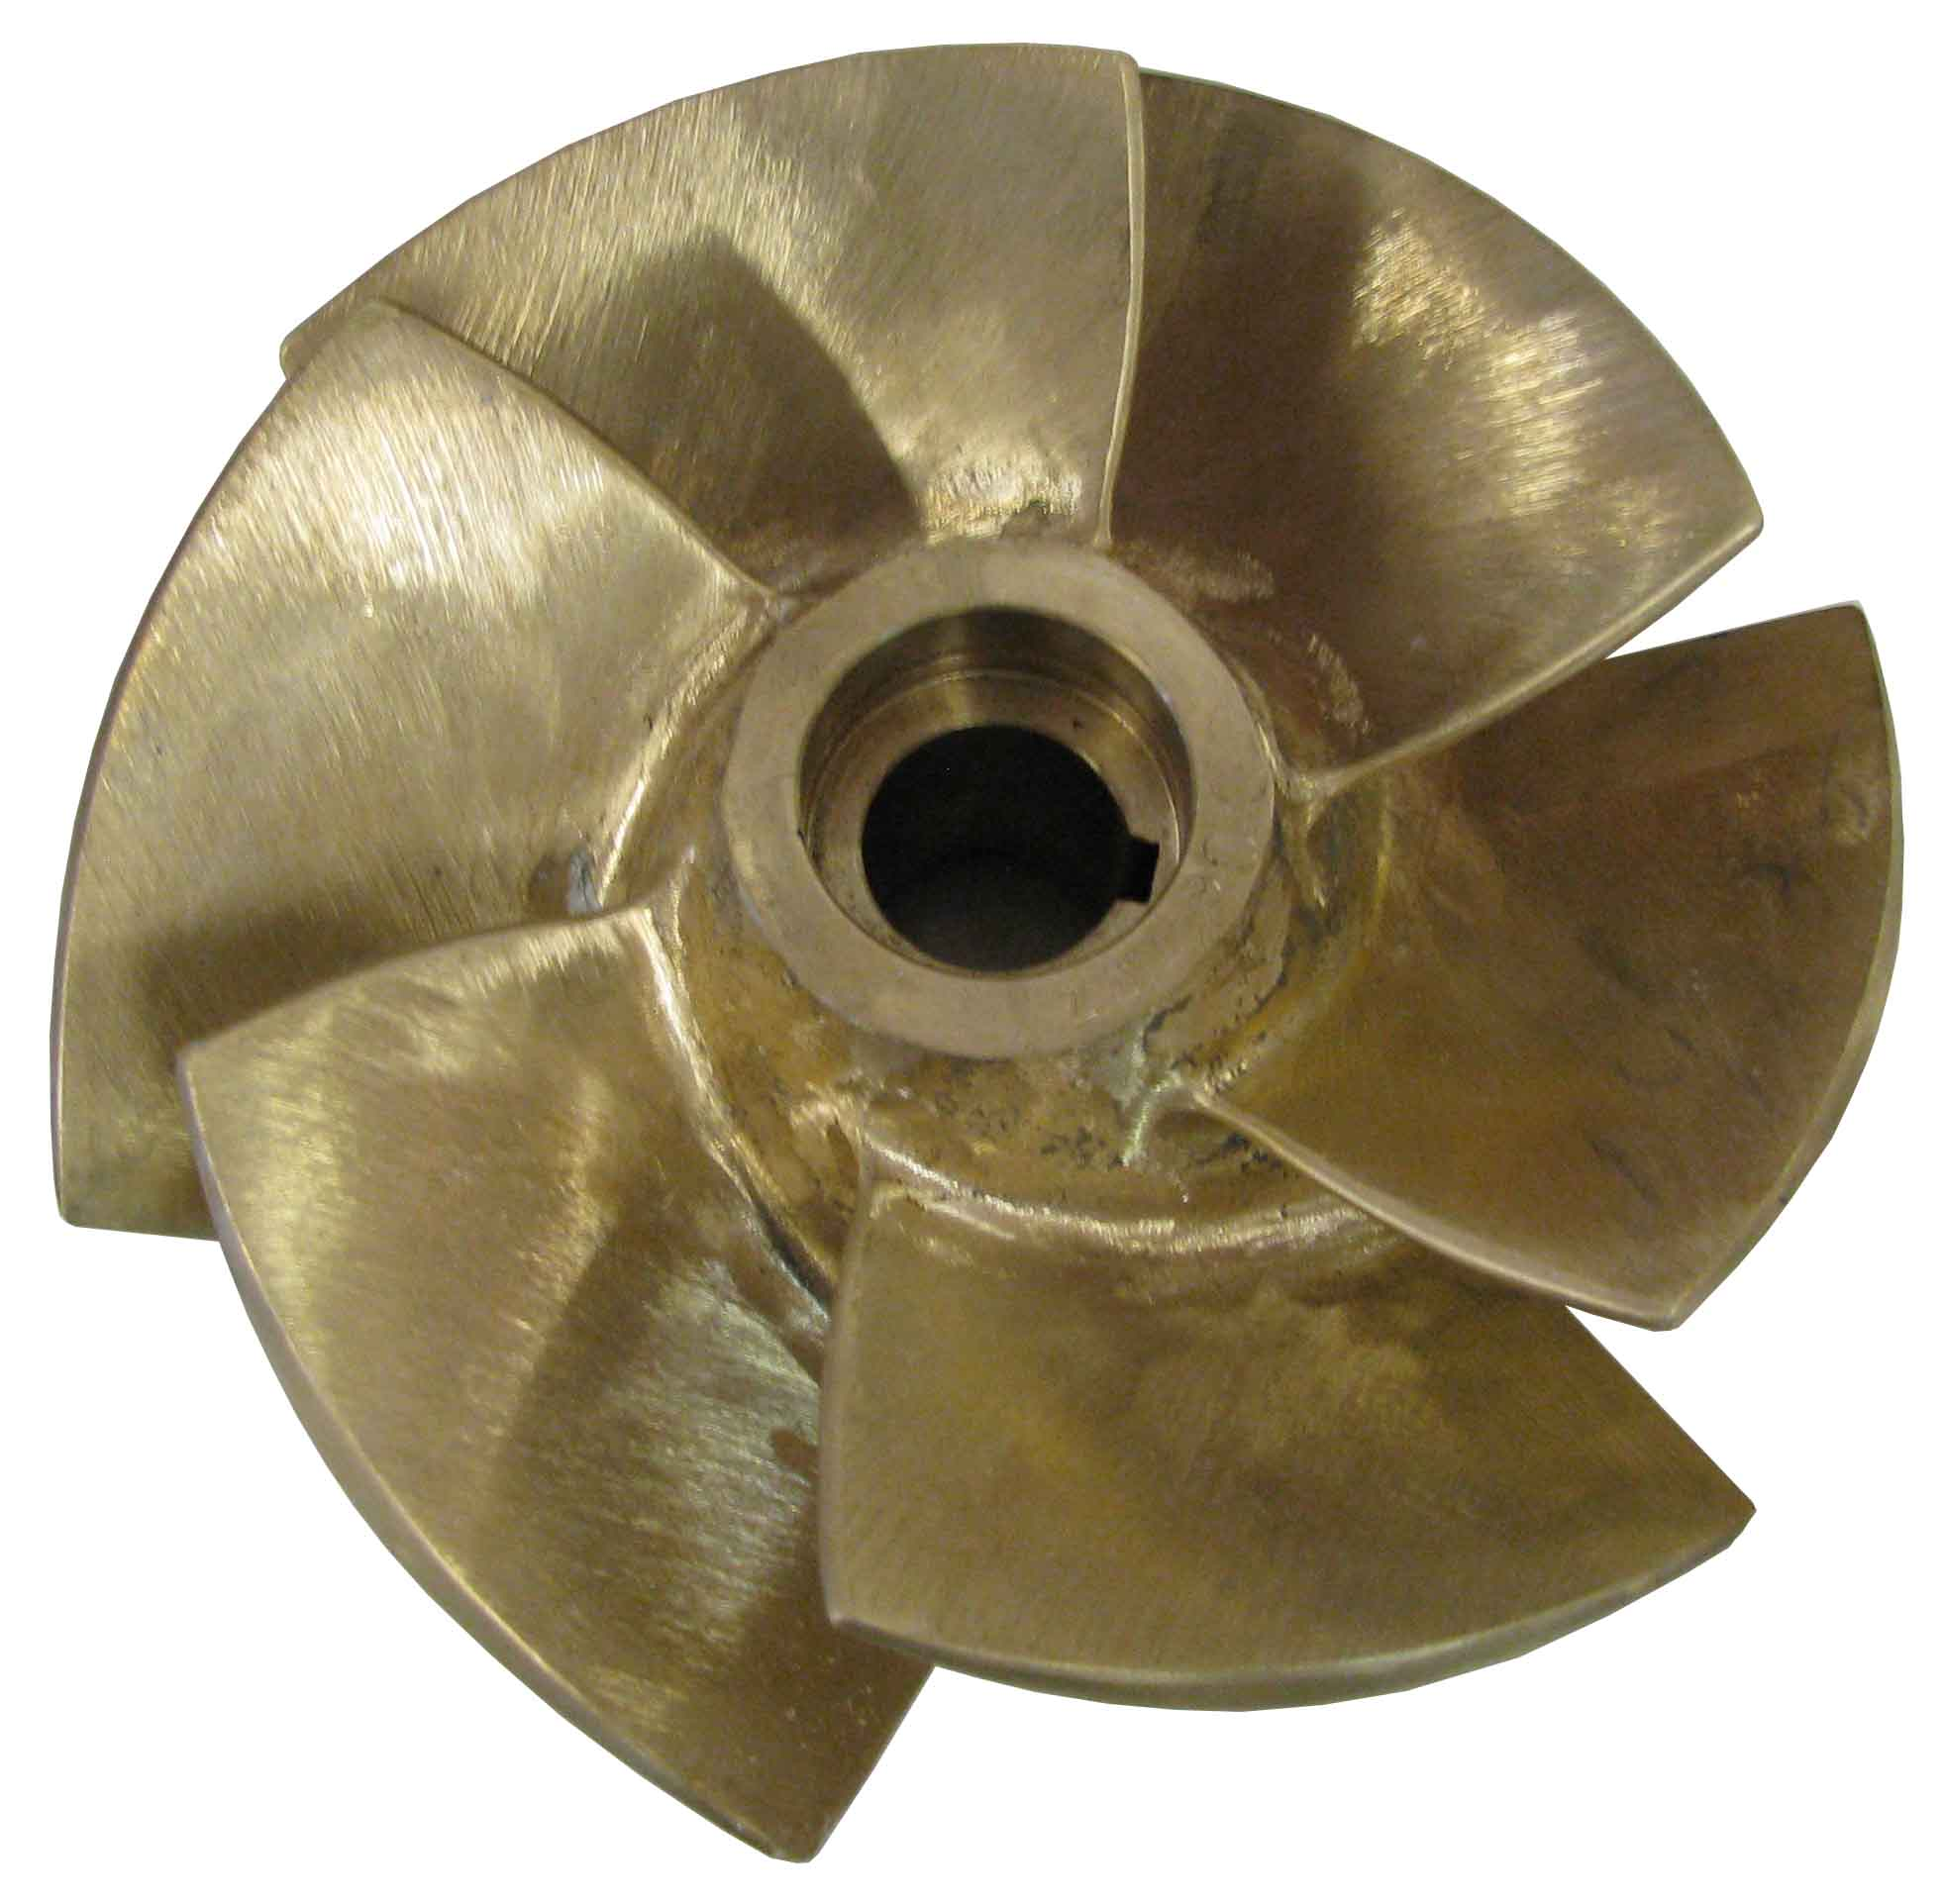 Axial Flow Impeller : Different impeller types hydra tech